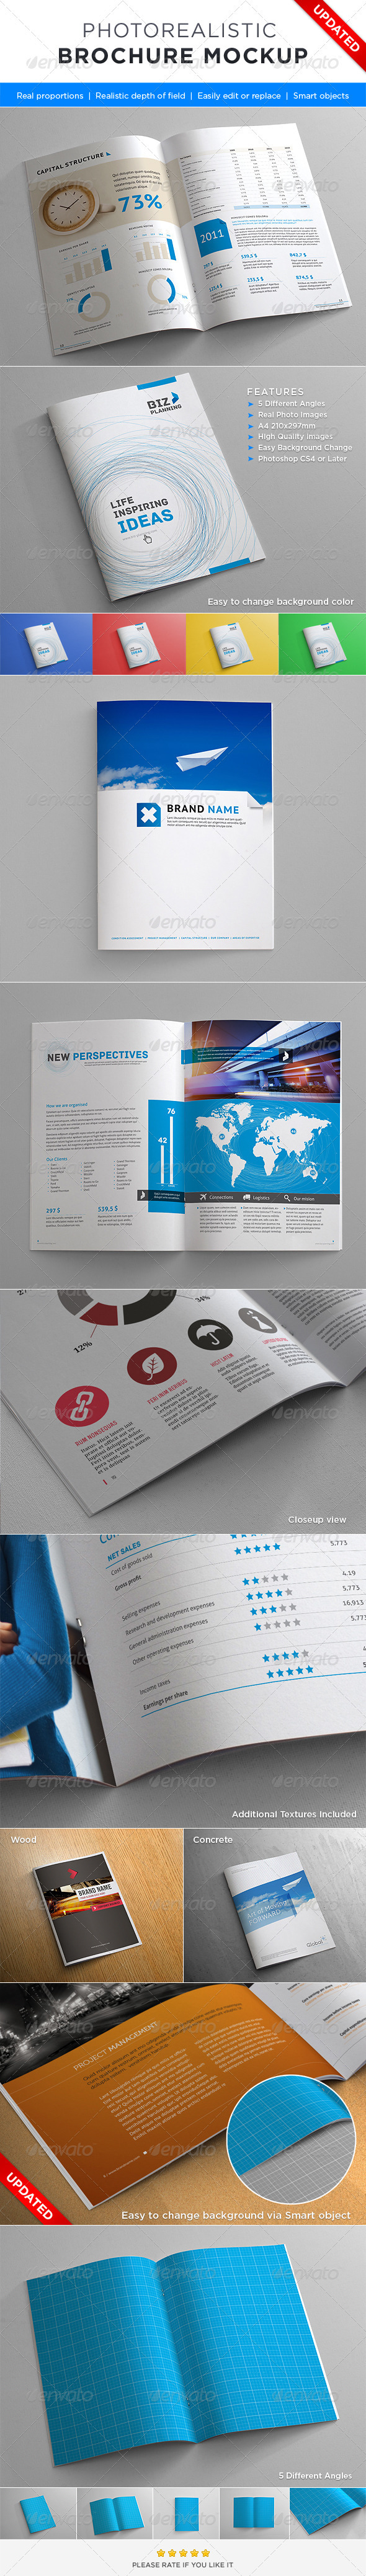 GraphicRiver Photorealistic Brochure Mock-up 2356999